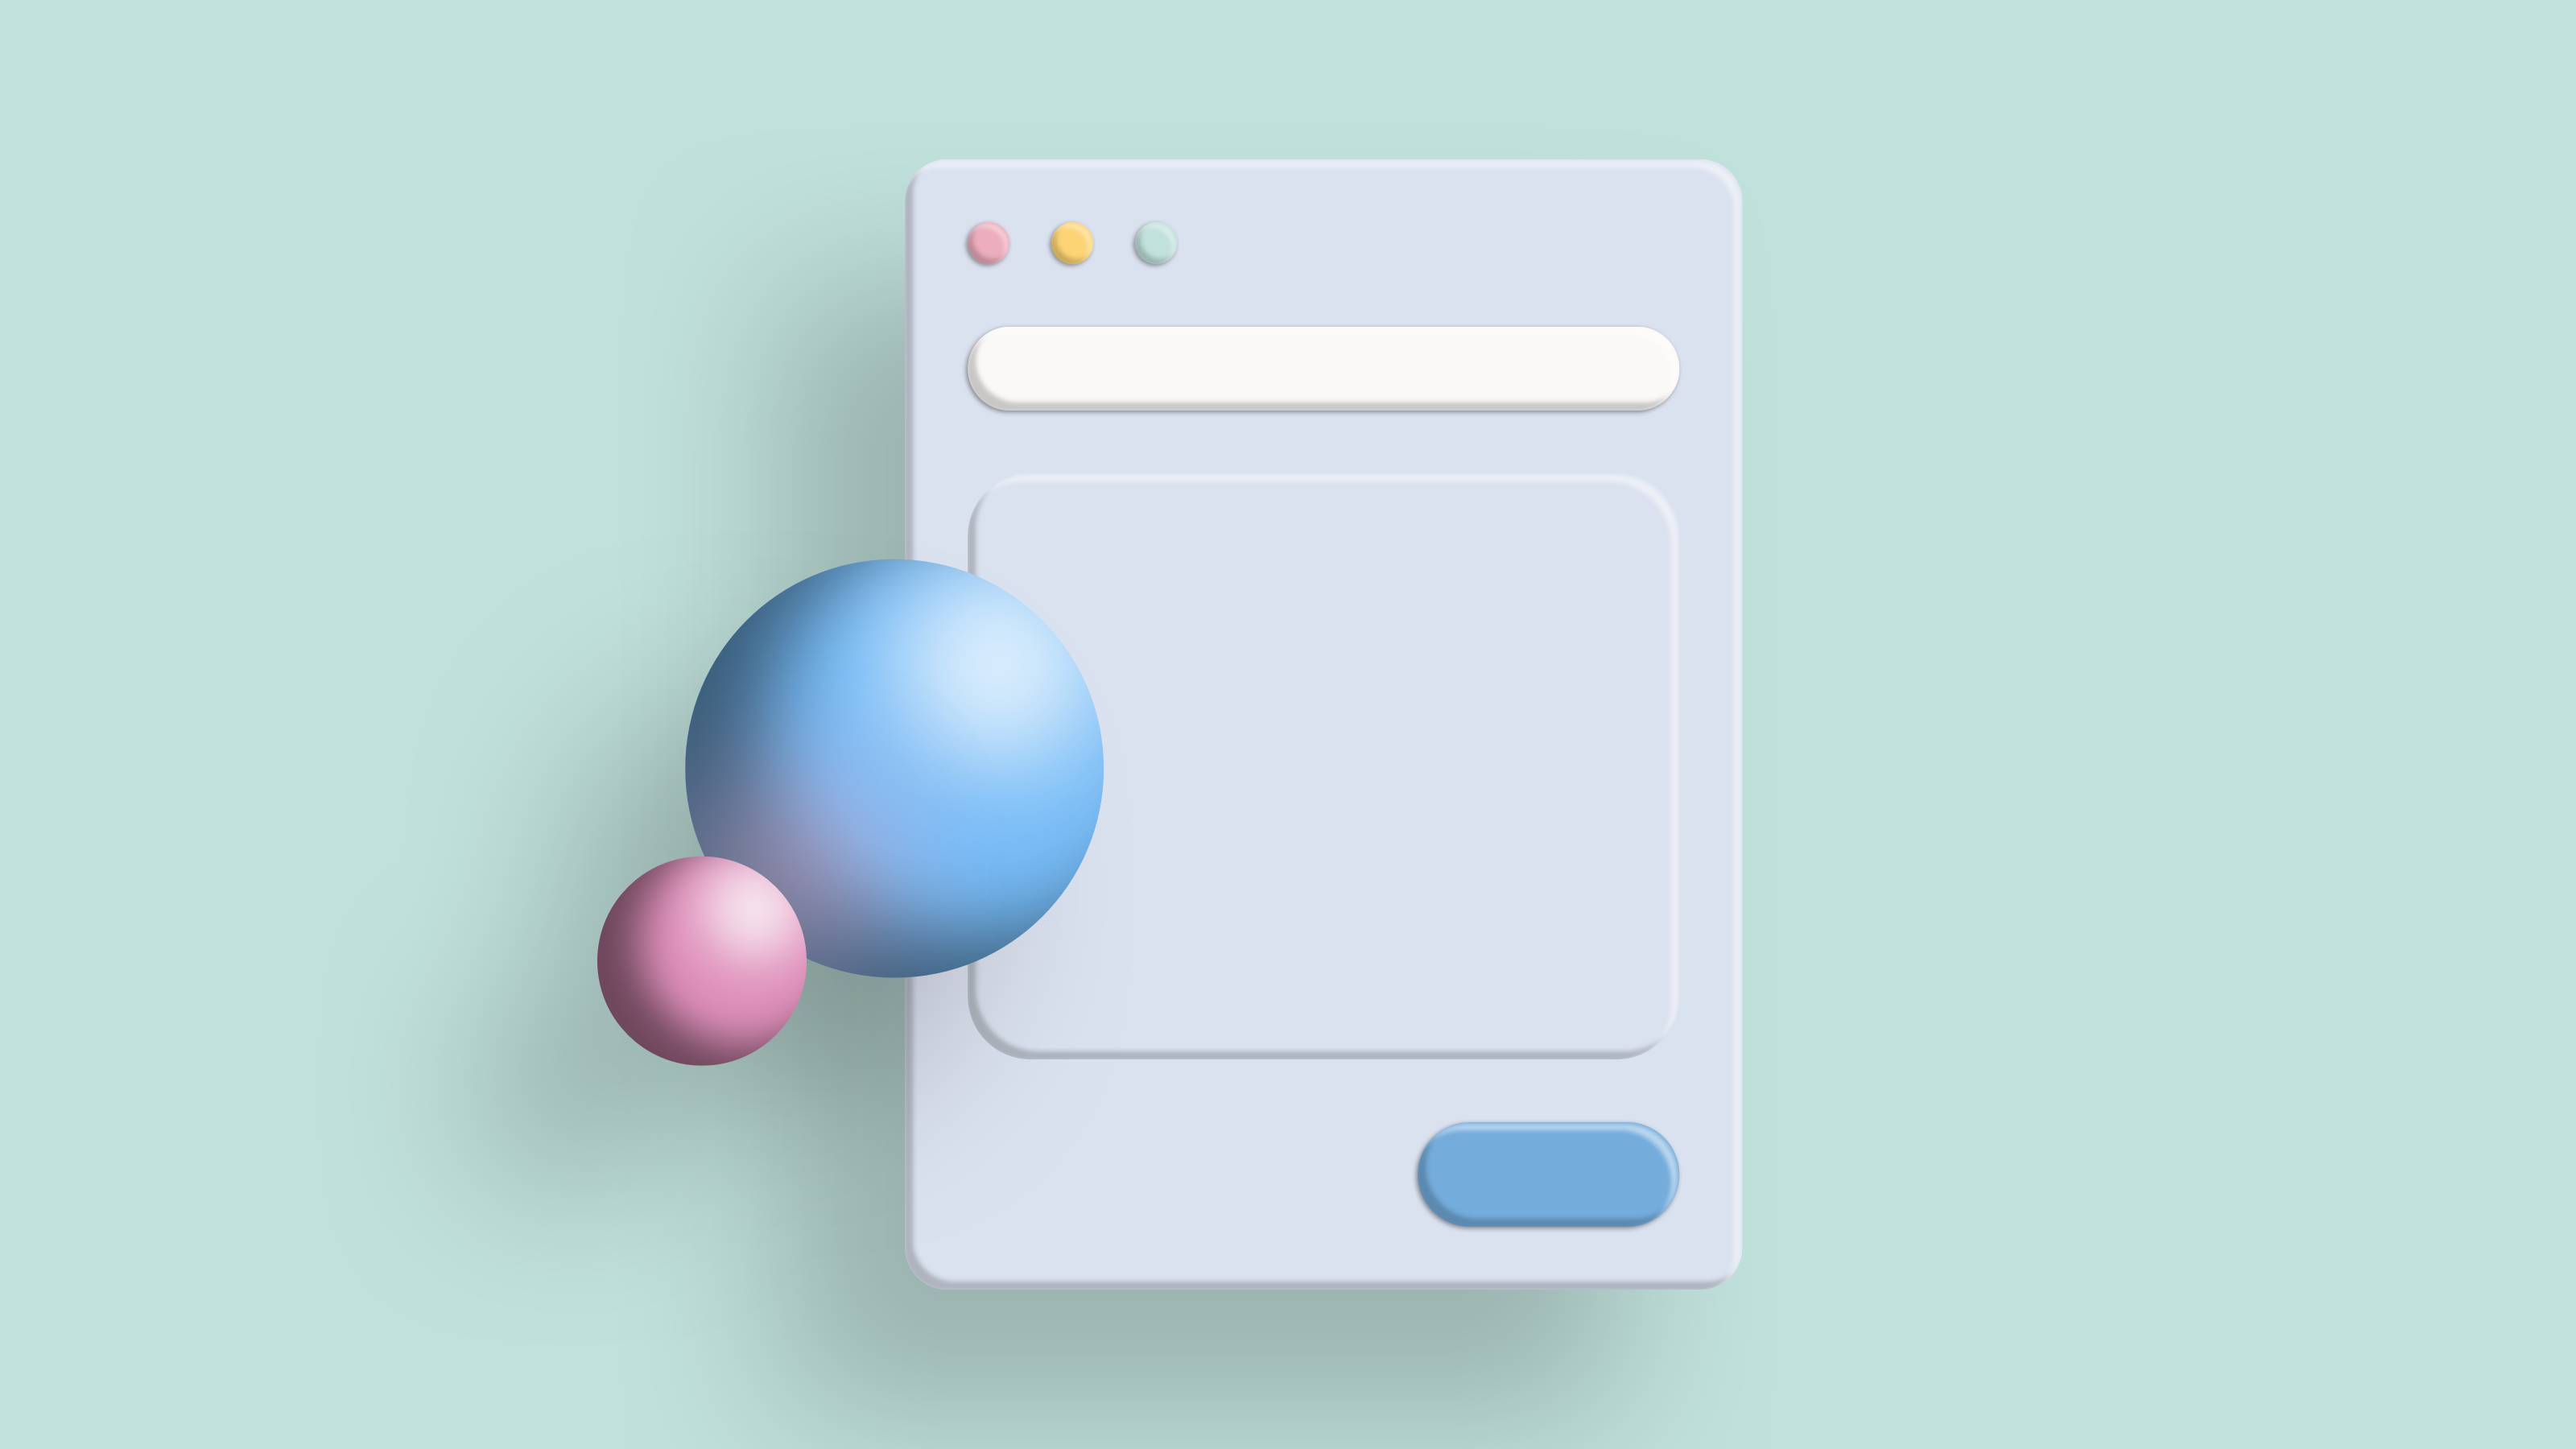 A simplified version of the title image: 3D illustration of a browser window and two spheres hovering over mint background